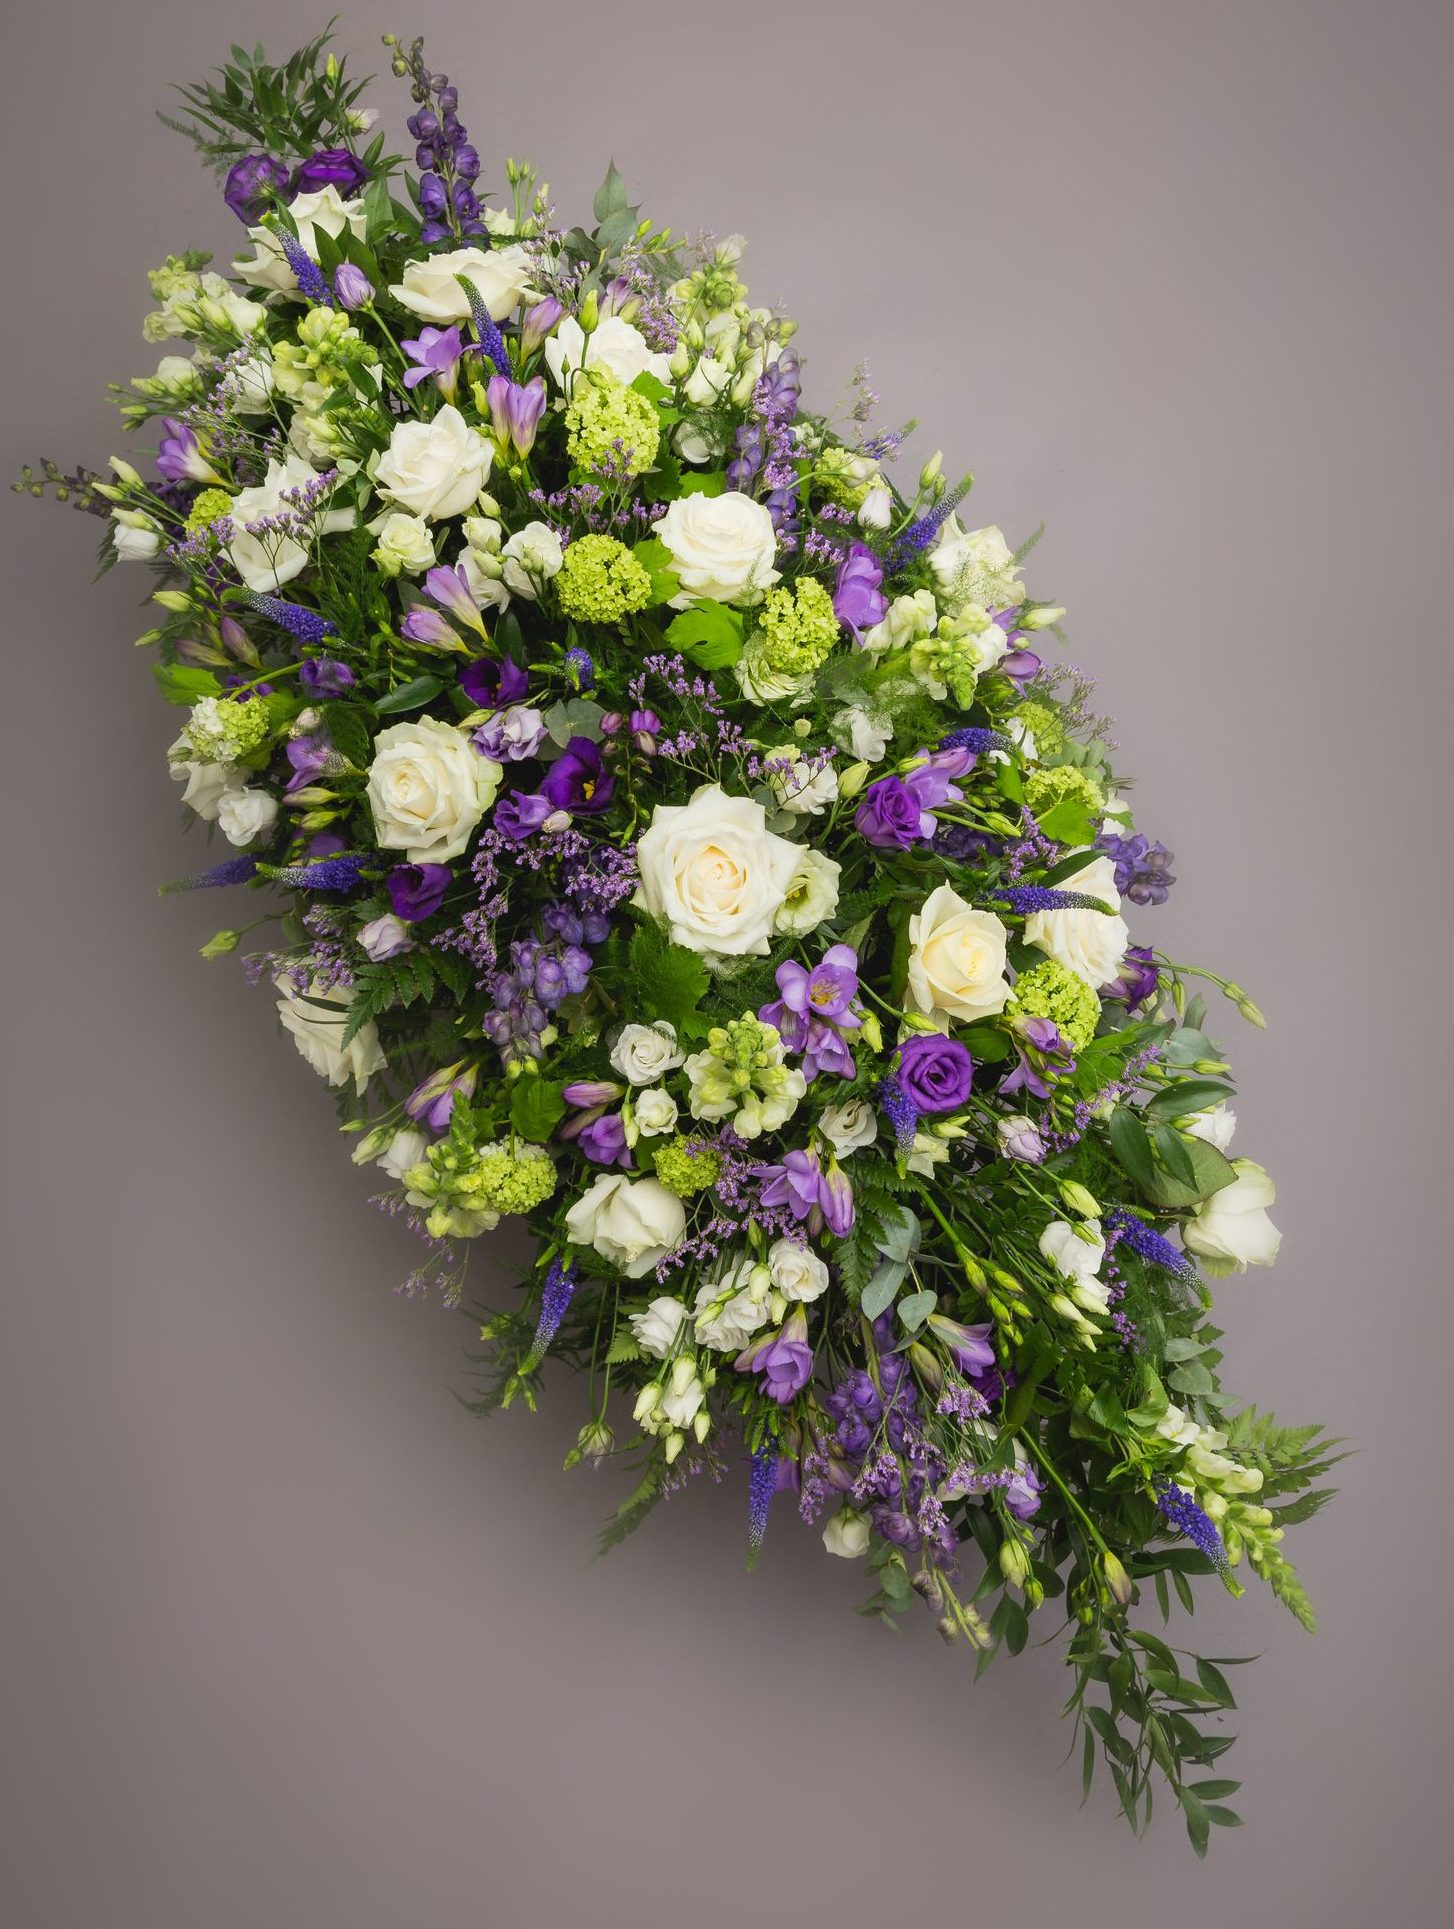 Funeral - Casket Wreath